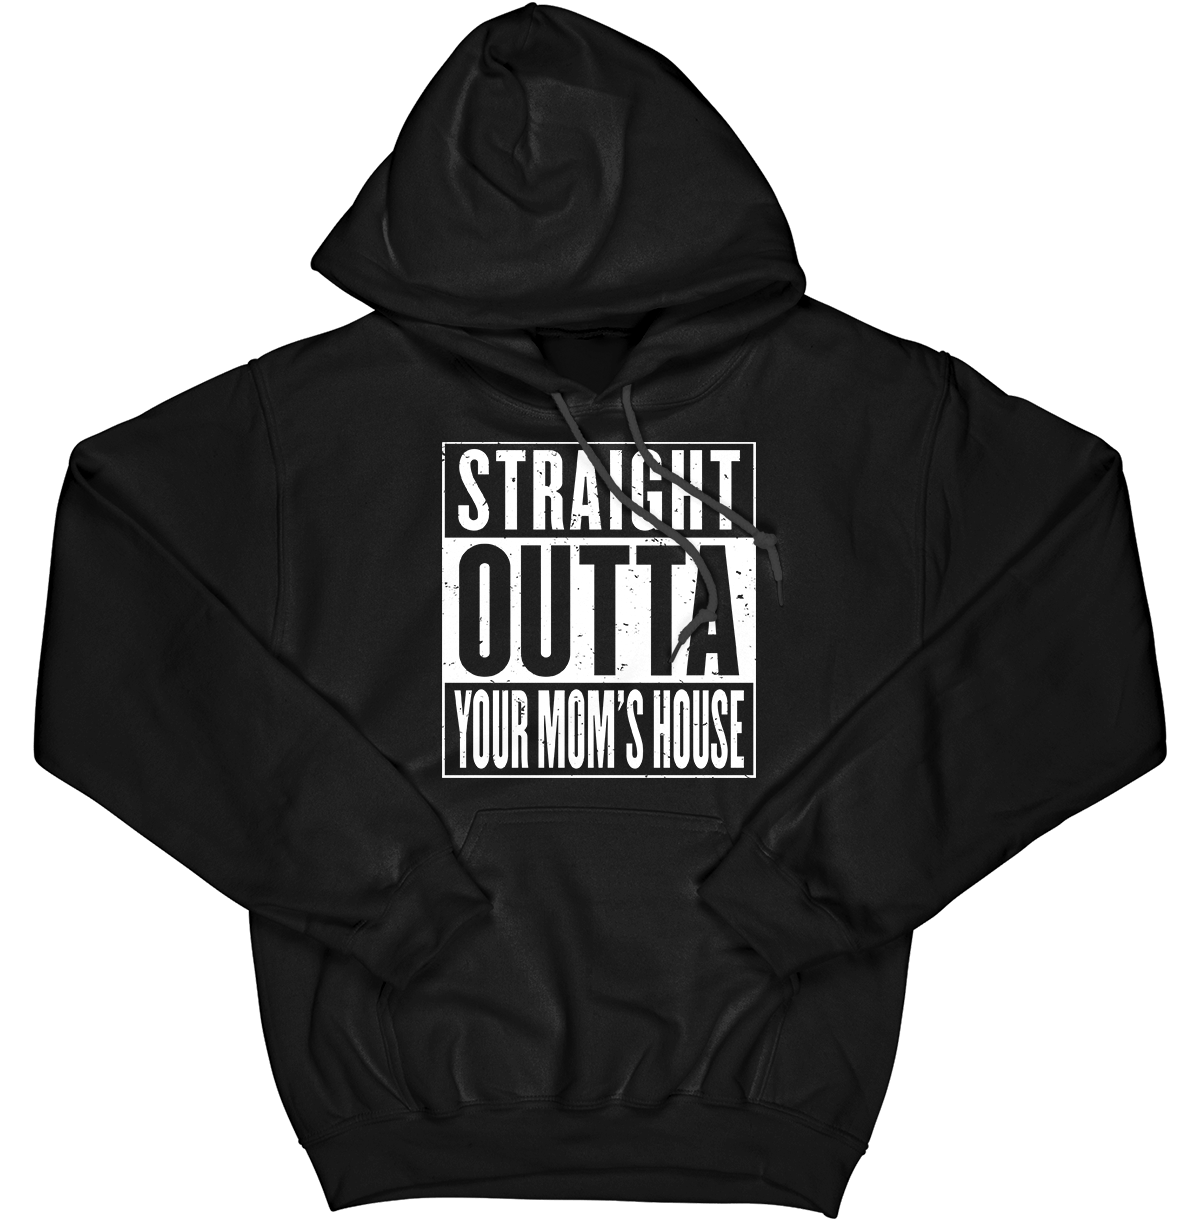 Straight Outta Your Mom's House Hoodie